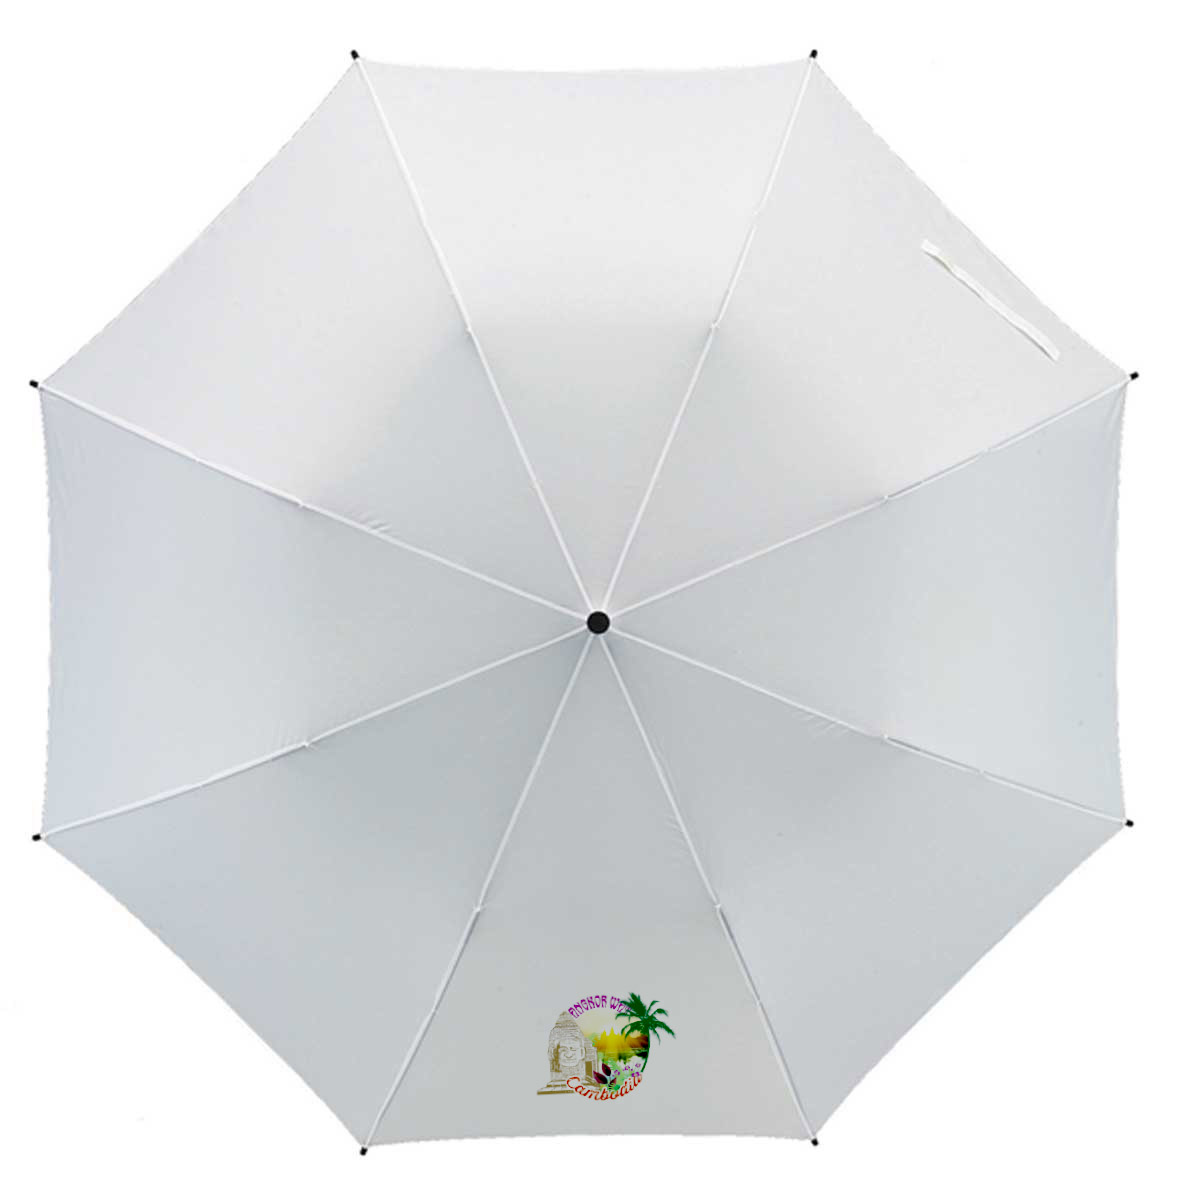 Manual pocket umbrella - White ns-638 w subl